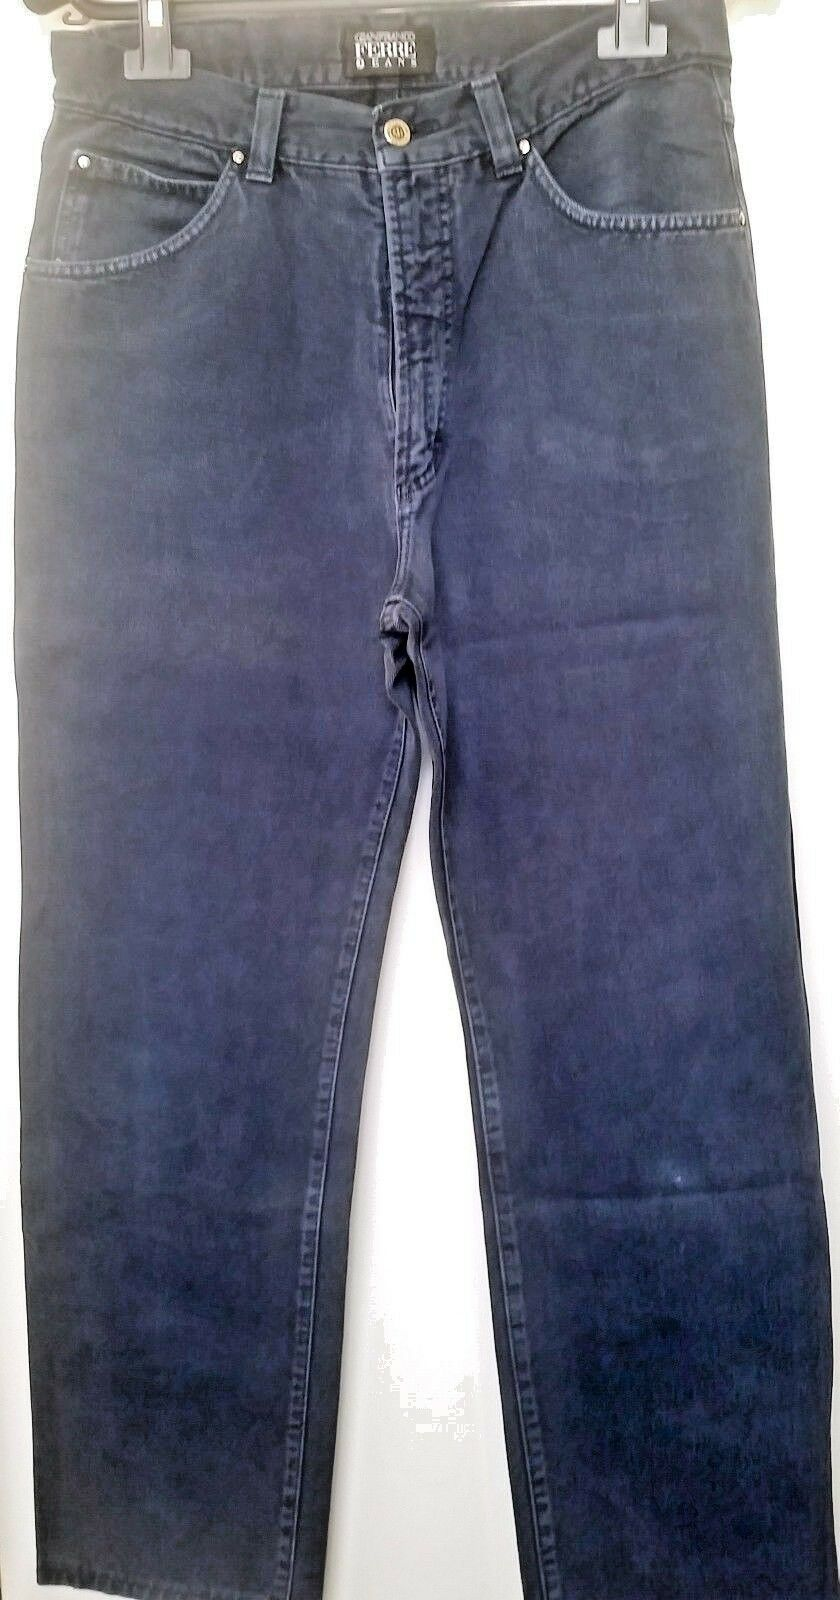 GIANFRANCO FERRE Jeans MEN Navy blueE Cotton PANTS 34 48 HIGH RISE From  EUC